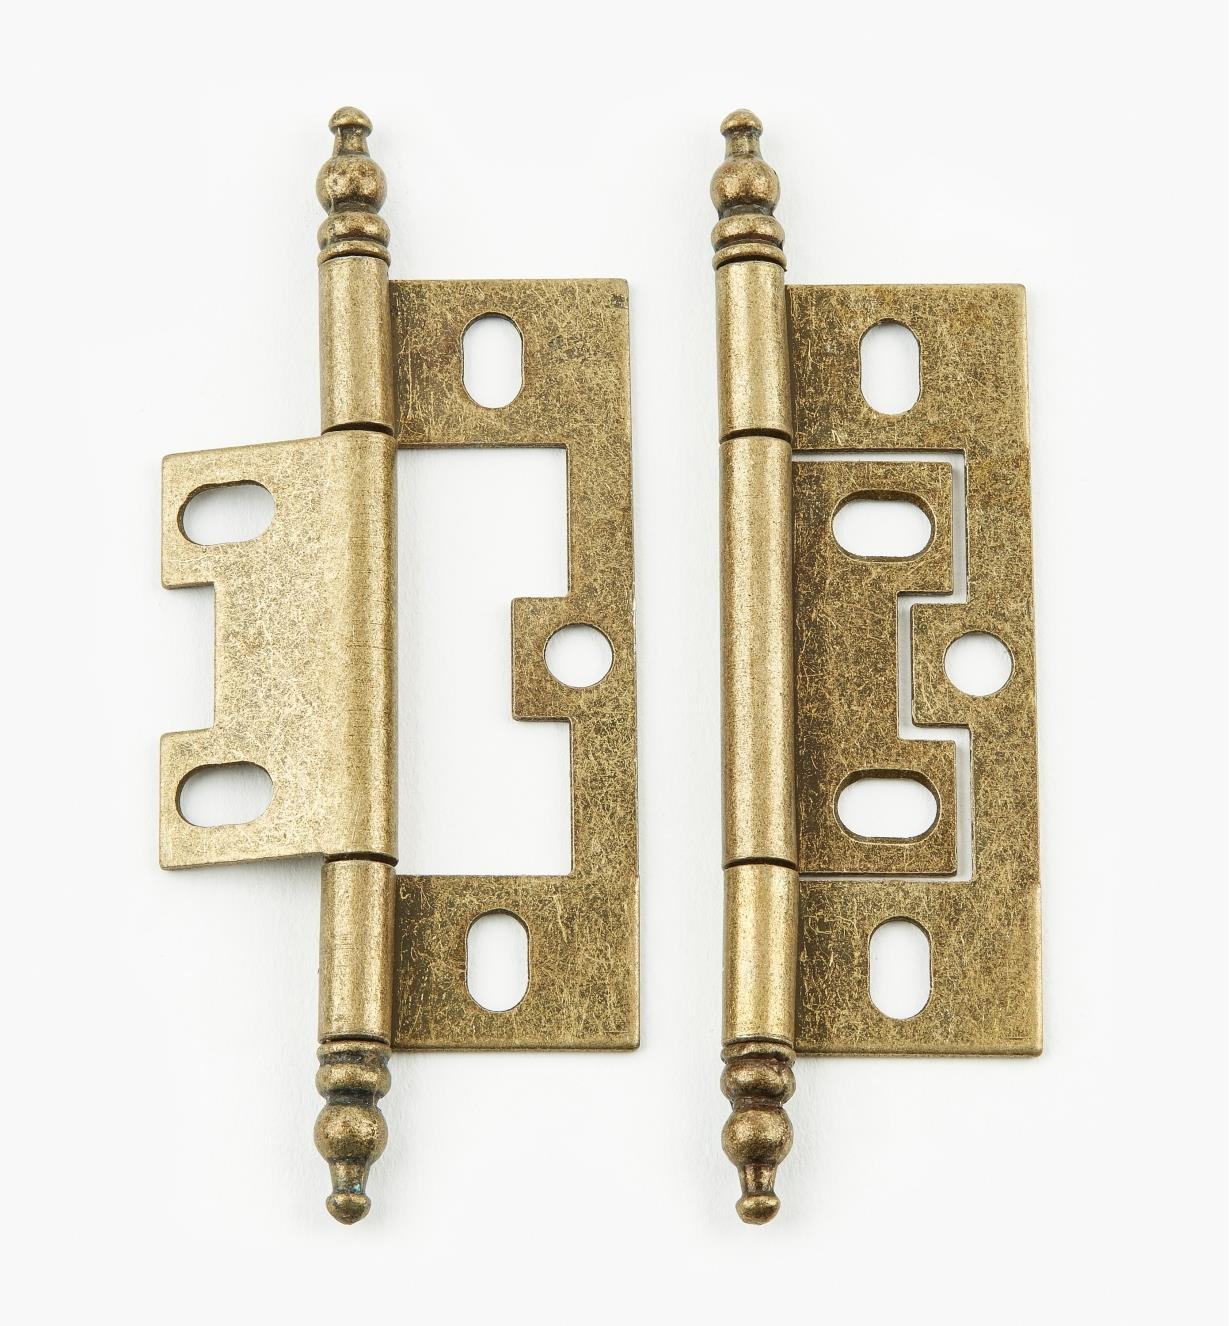 "02H1112 - 2 1/2"" x 3/4""Antique Brass Finial No-Mortise Hinges, pr."